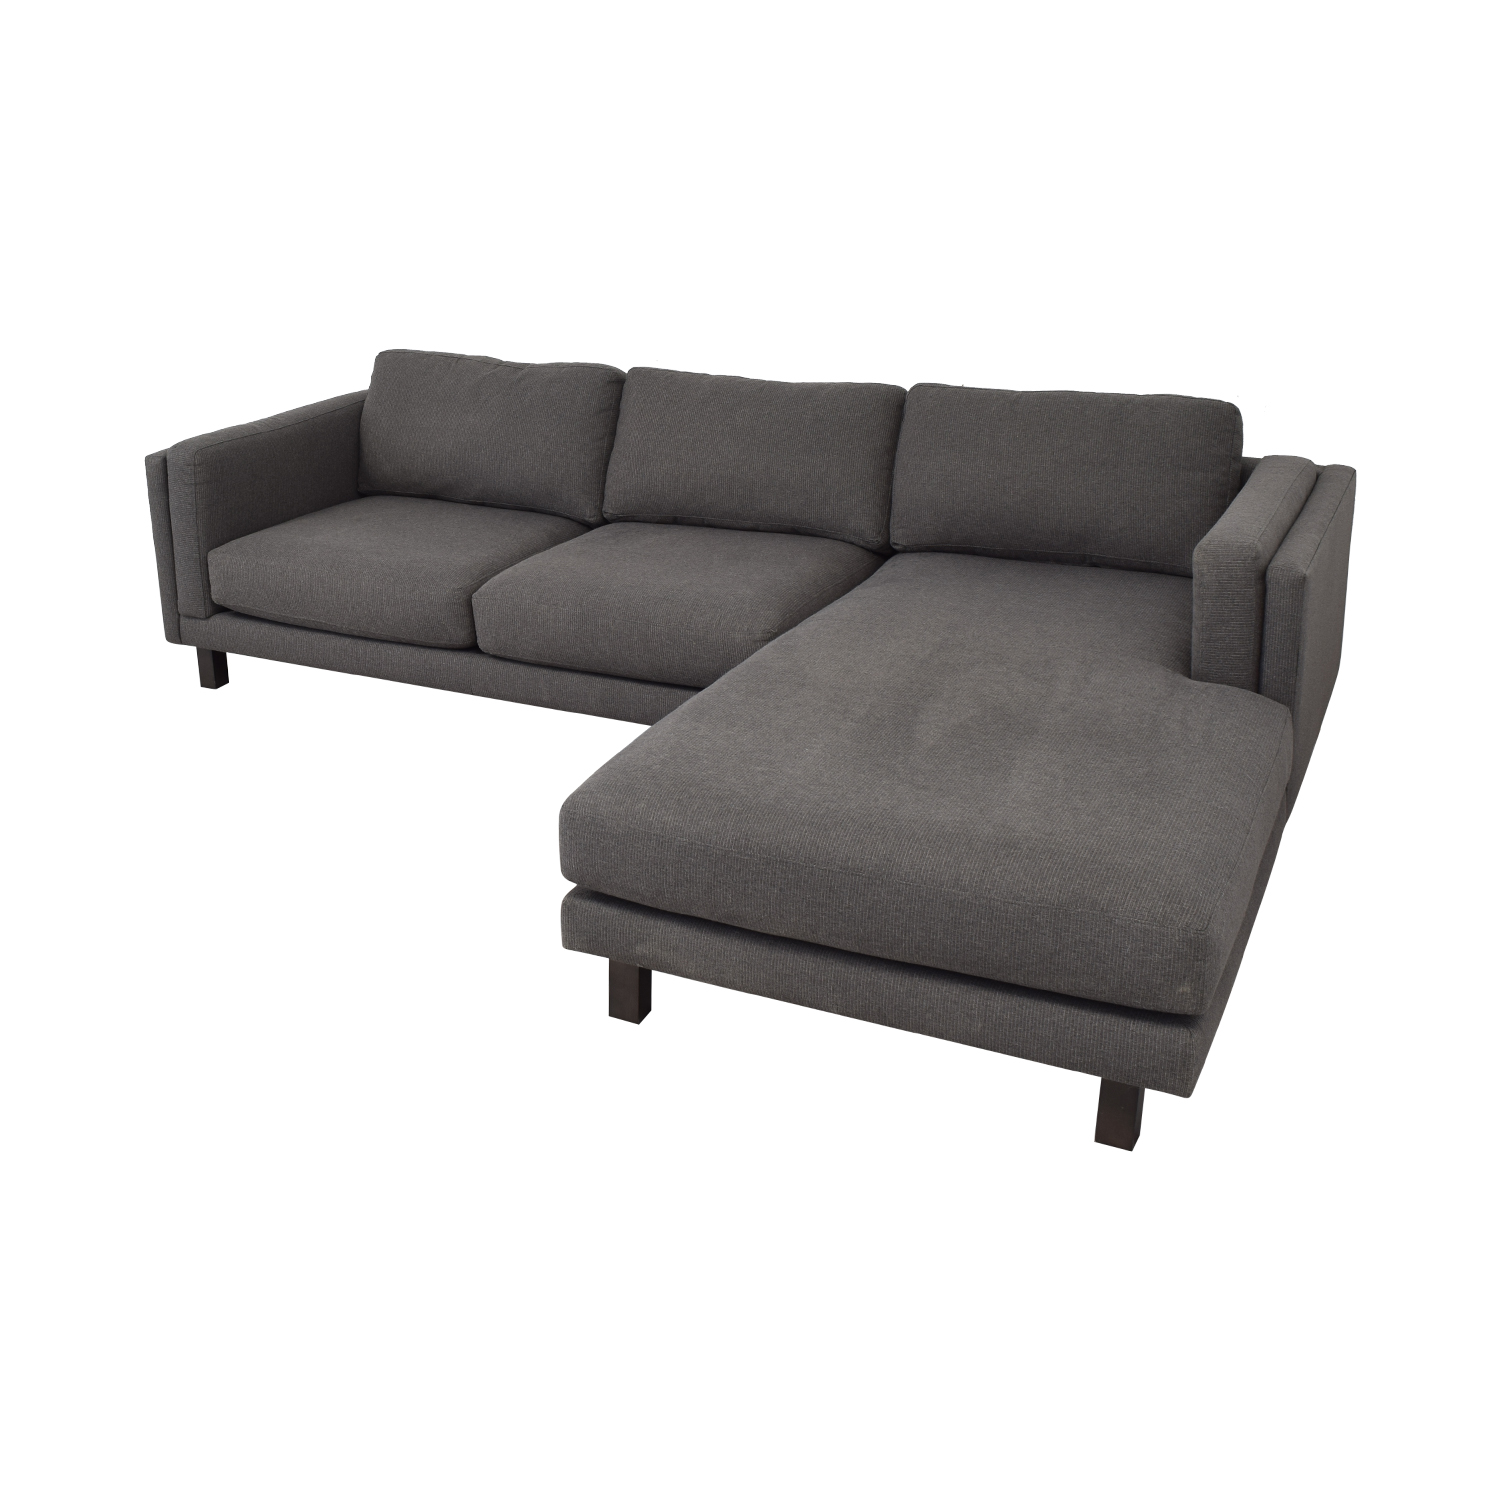 buy Room & Board Holden Sofa with Right-Arm Chaise Room & Board Sectionals